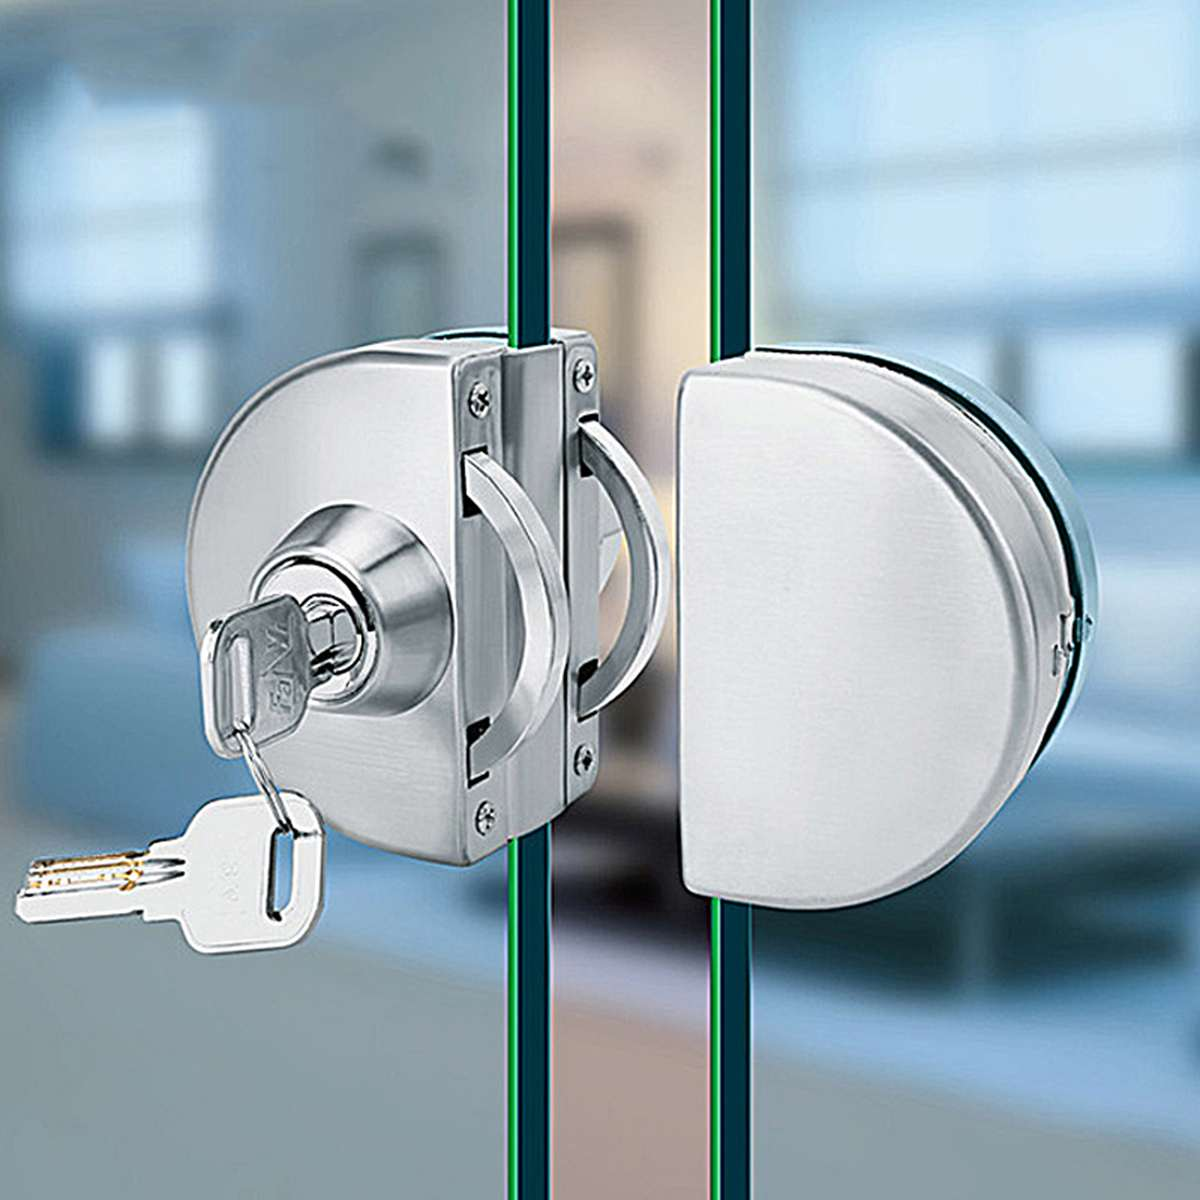 10-12mm Glass Door Lock 304 Stainless Steel Double Bolts Swing Push Sliding Hotel Office Semi-Circular Double Door Ball Lock10-12mm Glass Door Lock 304 Stainless Steel Double Bolts Swing Push Sliding Hotel Office Semi-Circular Double Door Ball Lock